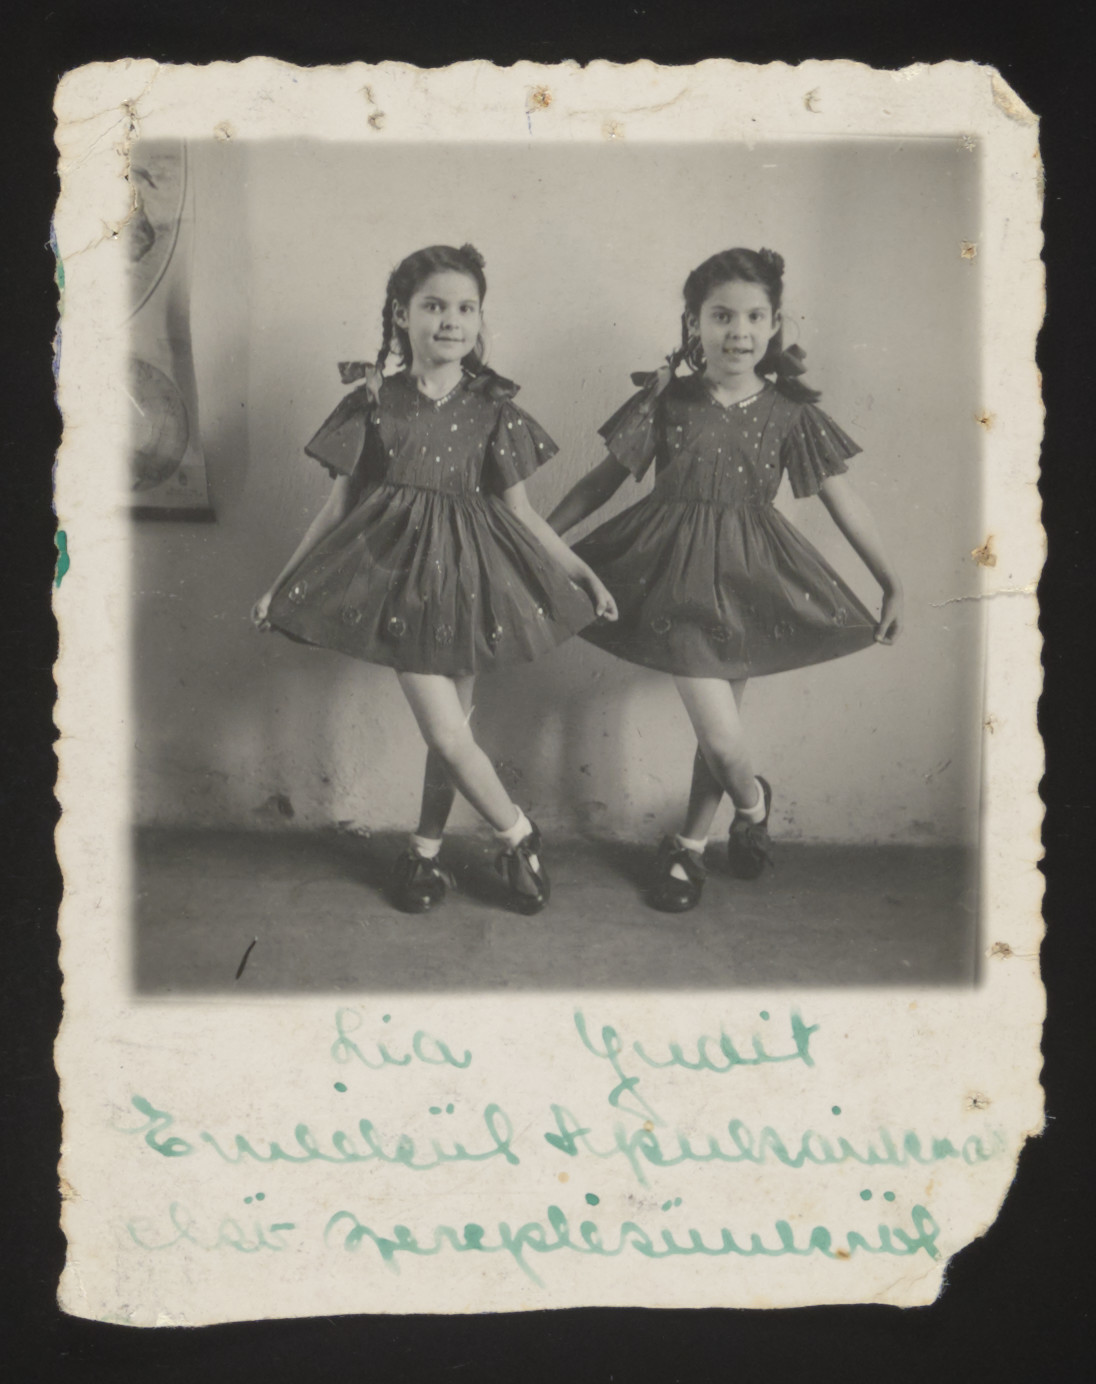 Twin sisters Yehudit and Lea pose for a Purim portrait in festive dresses.  Their mother mailed this photograph to their father in a Hungarian forced labor brigade.